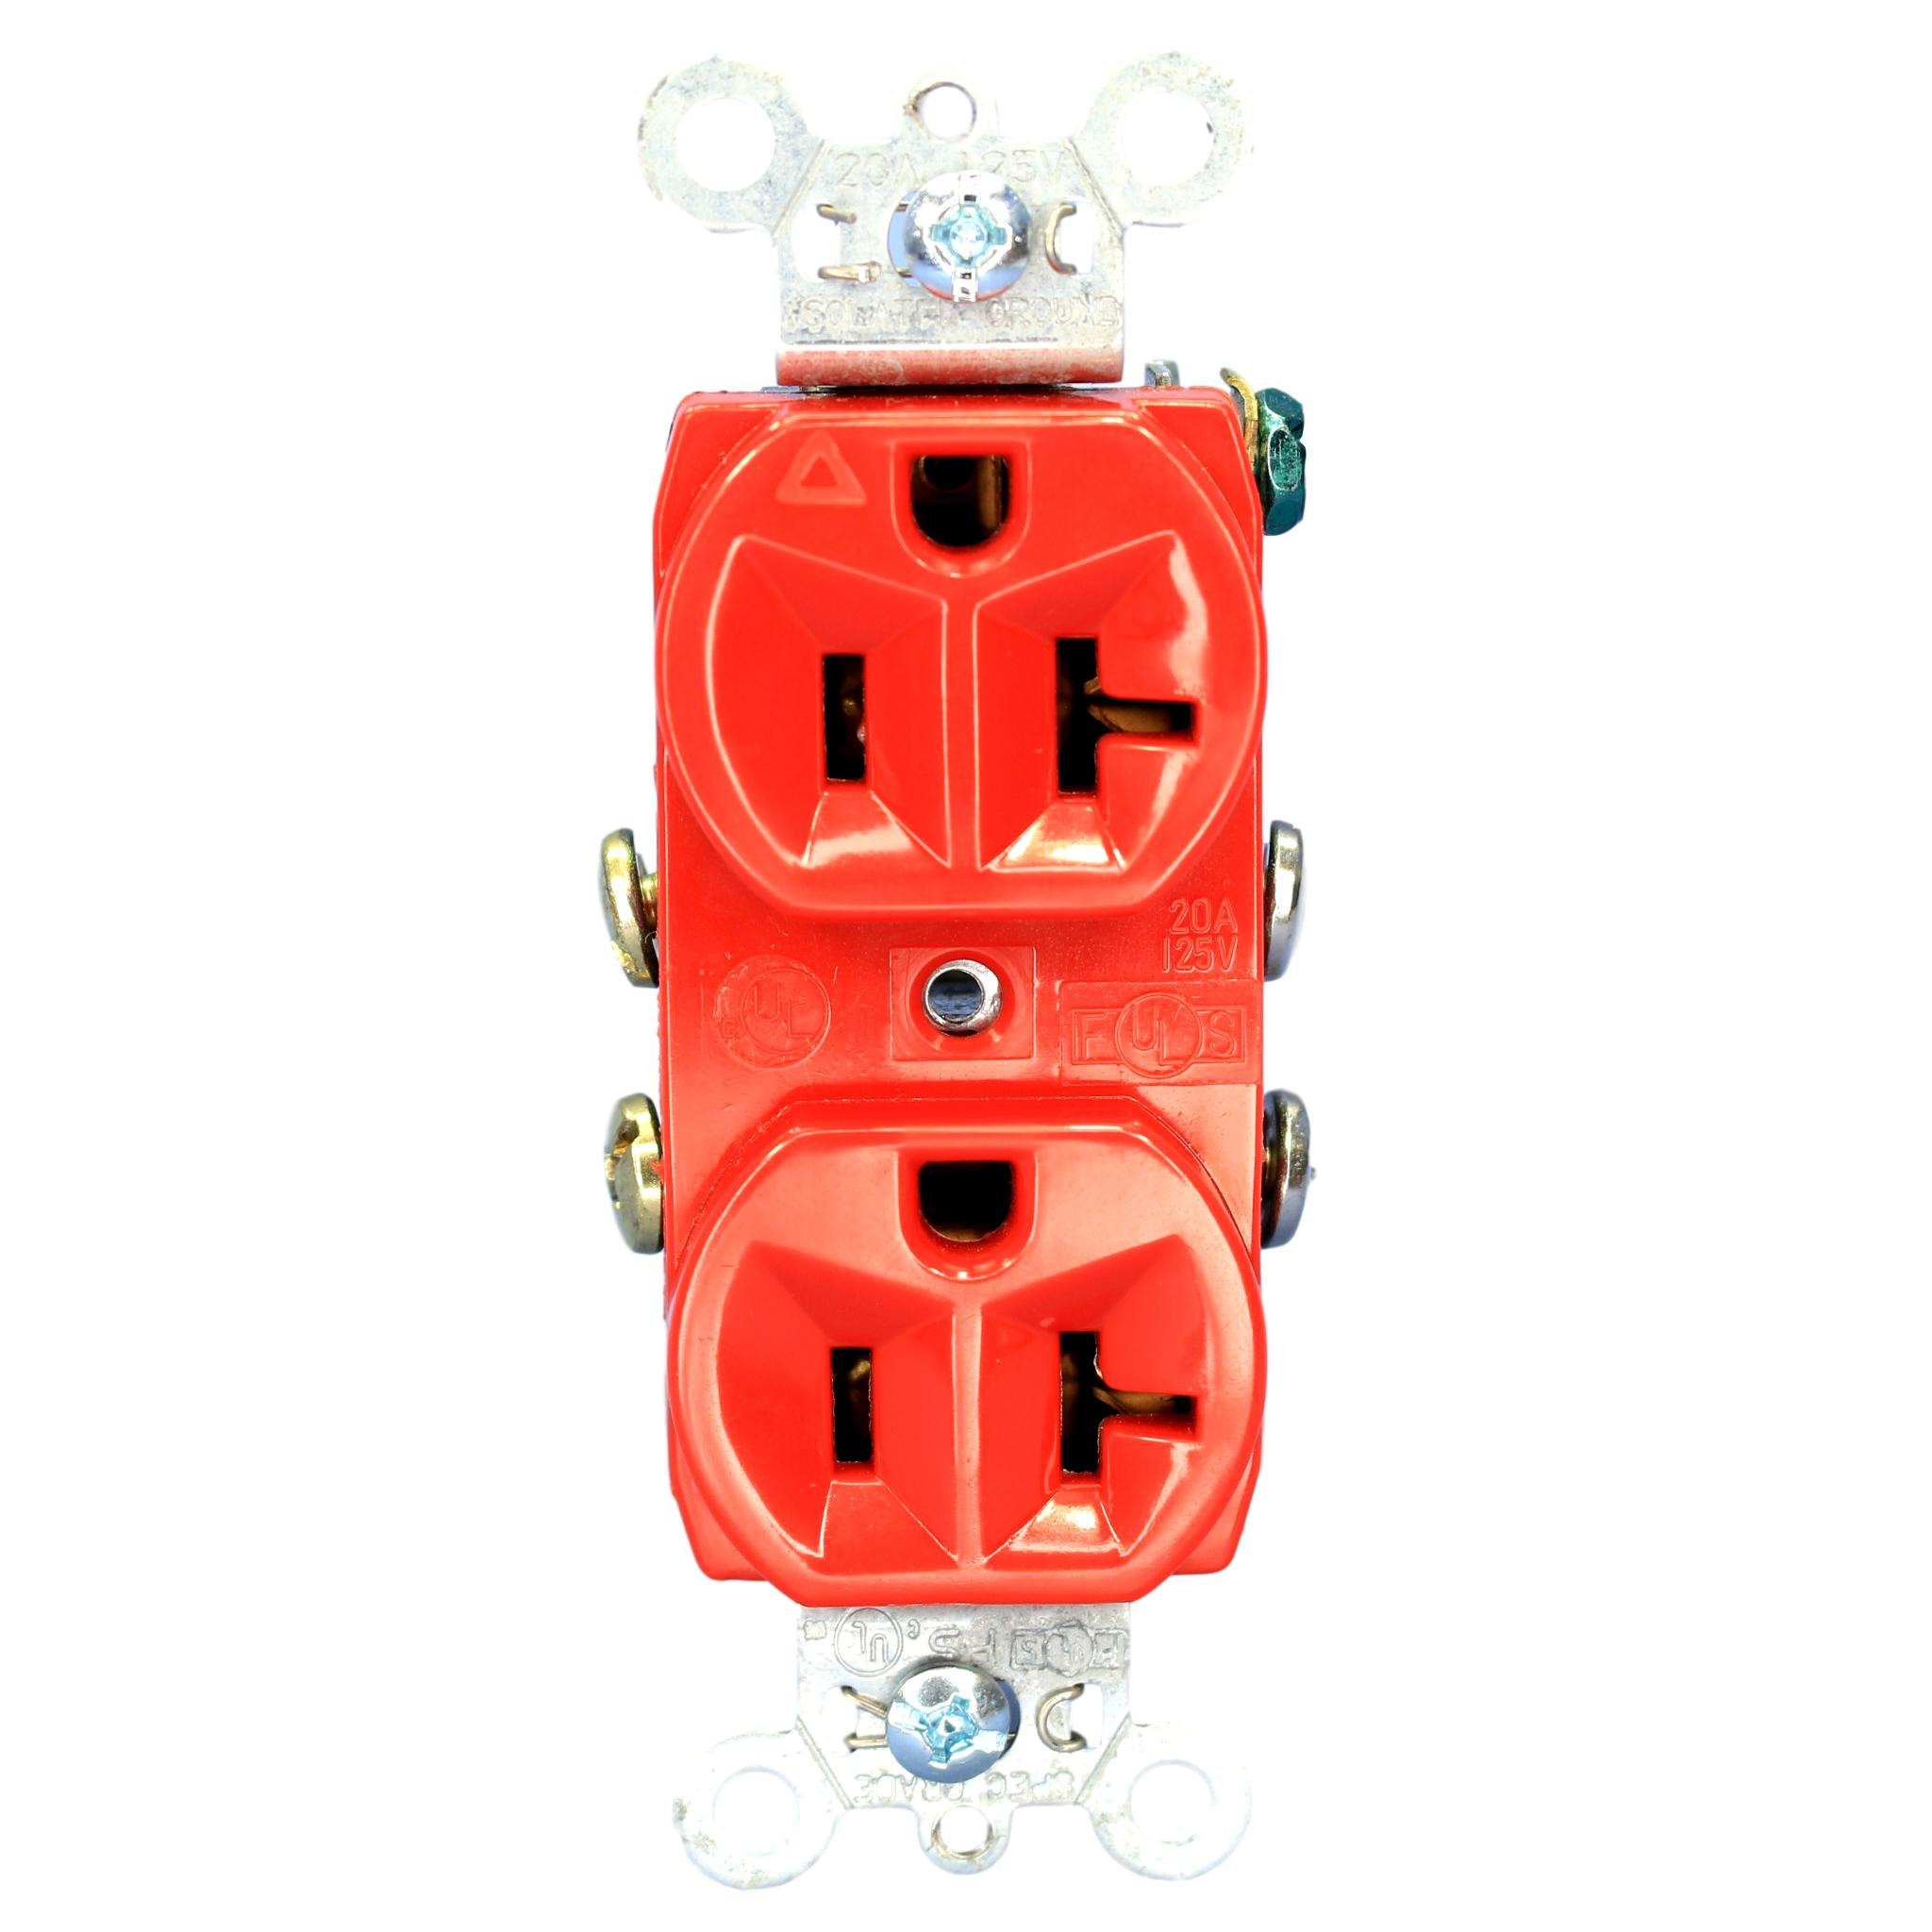 P&S Red Isolated Ground Straight Duplex Receptacle 5-20R 20A 125V IG5362-RED